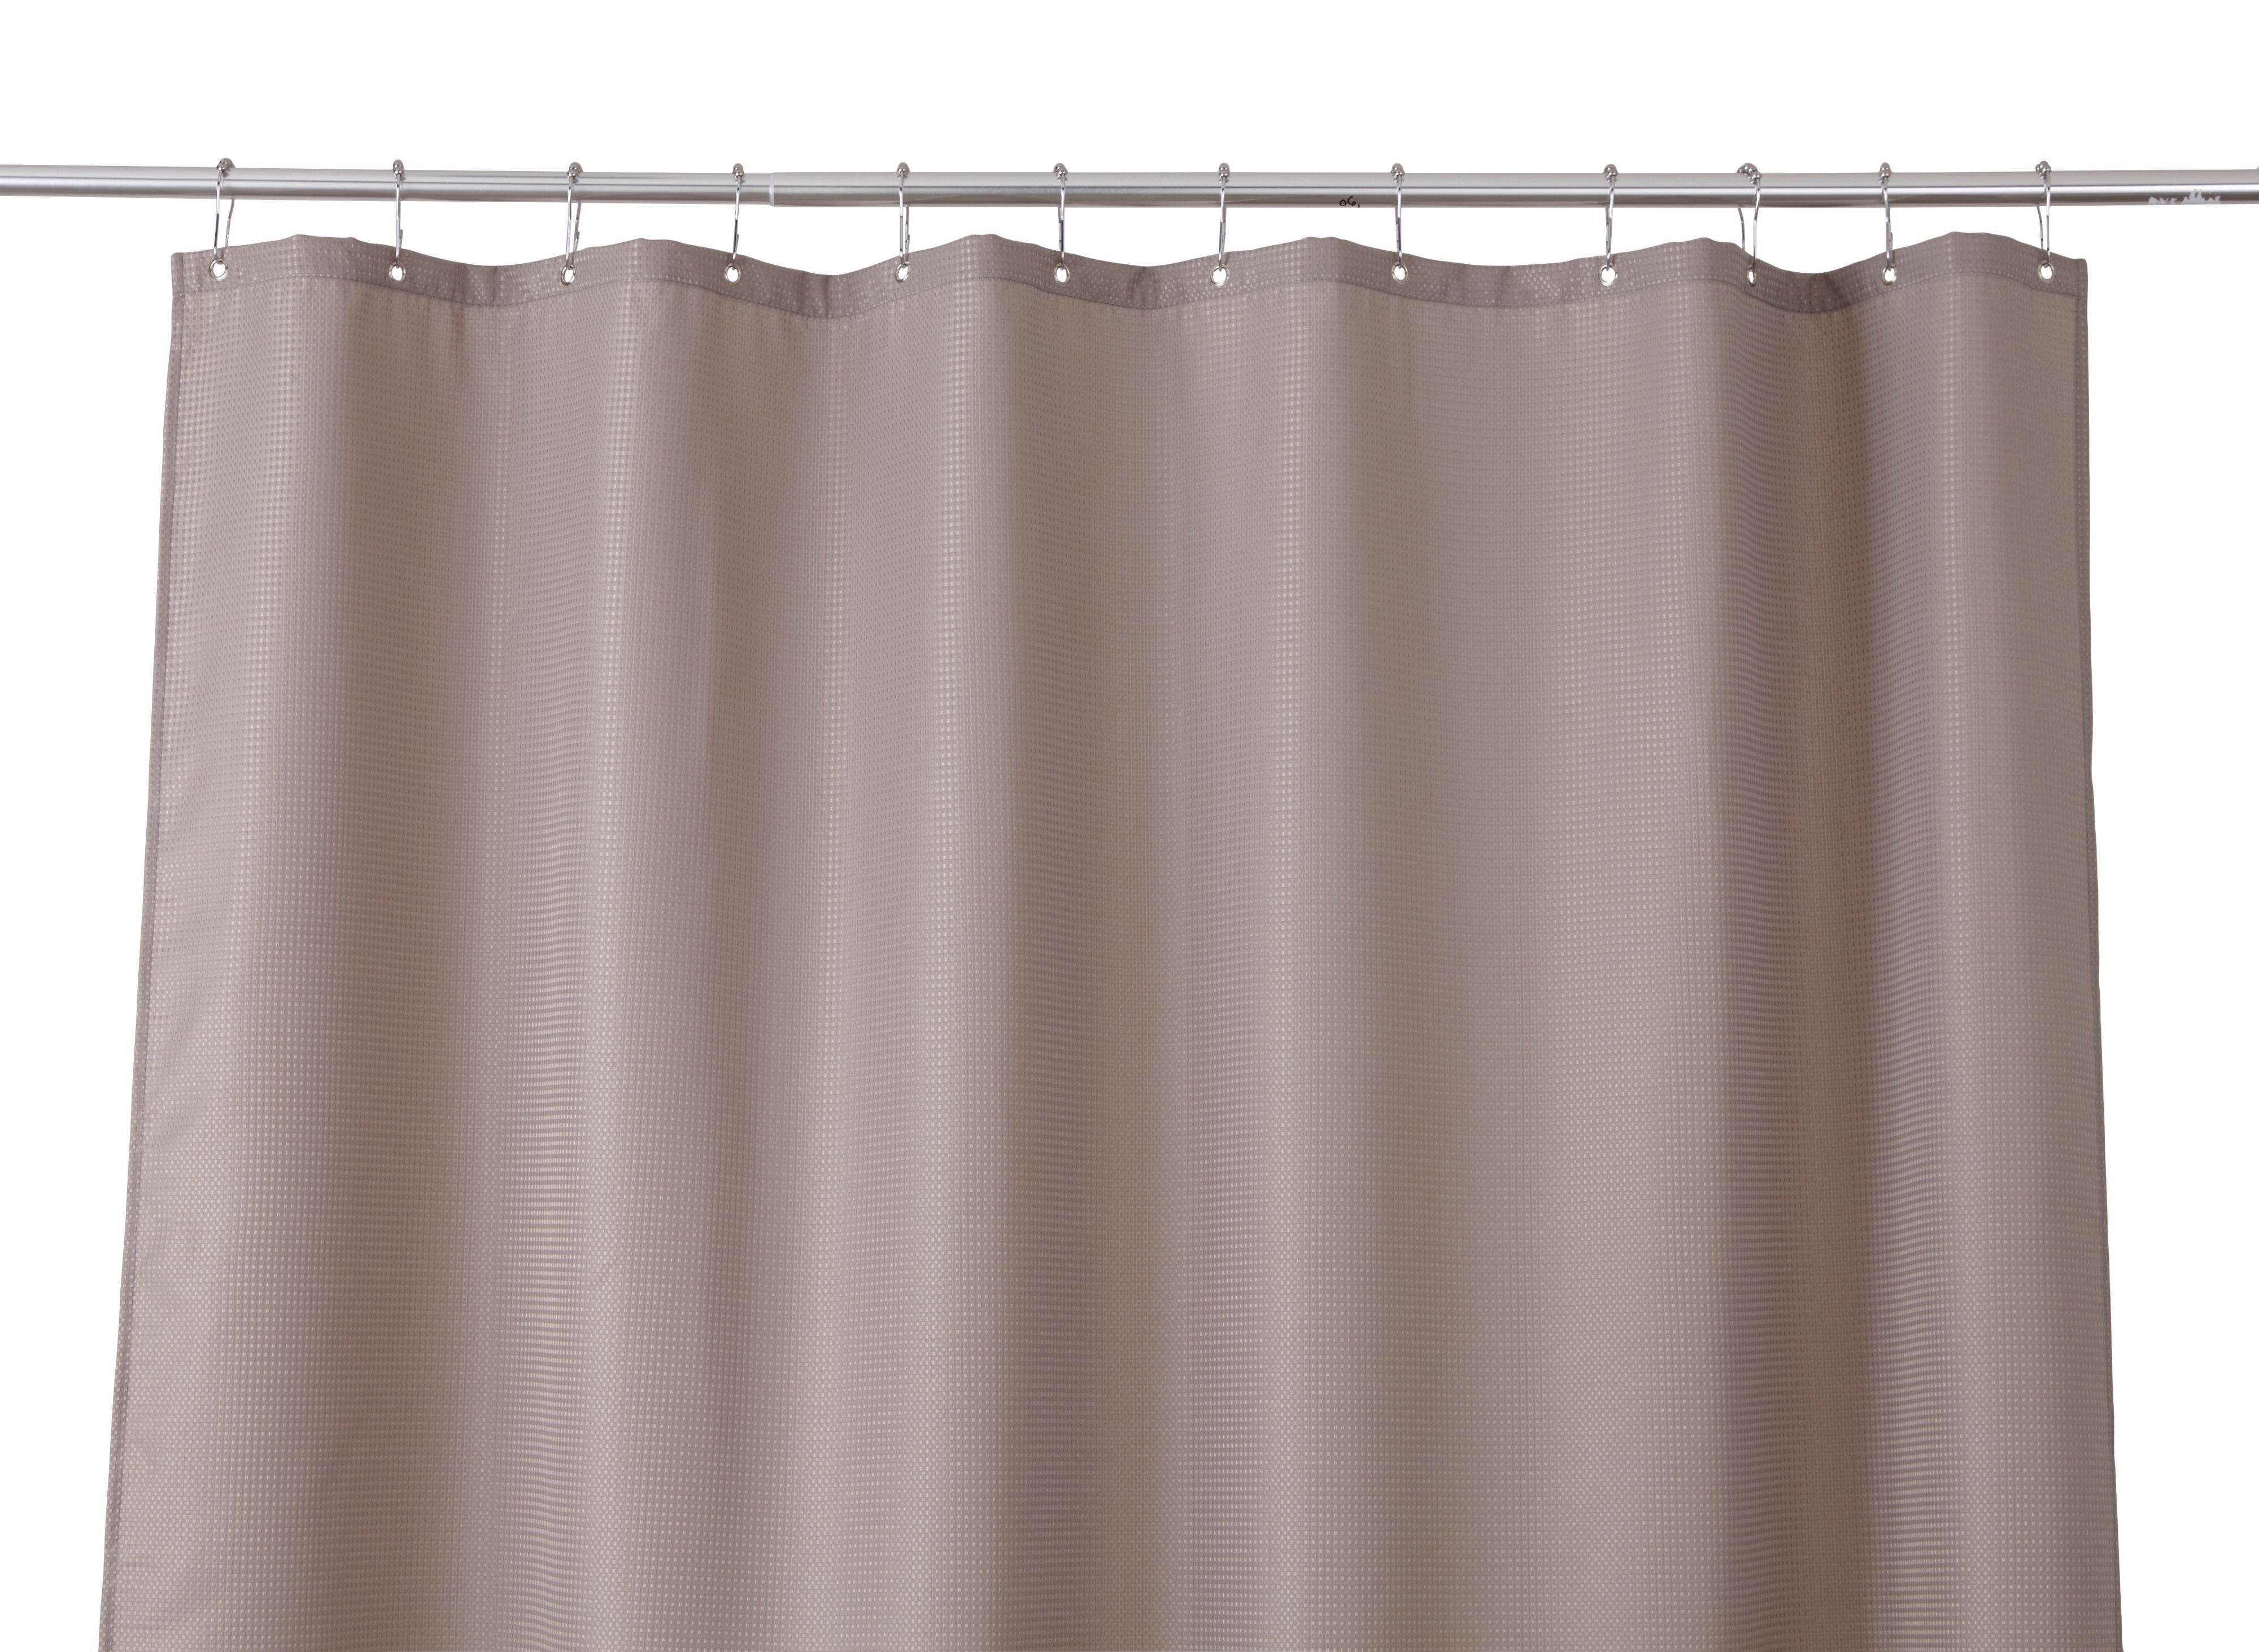 Cooke & Lewis Cecina Greige Waffle Shower Curtain (l)1800 Mm